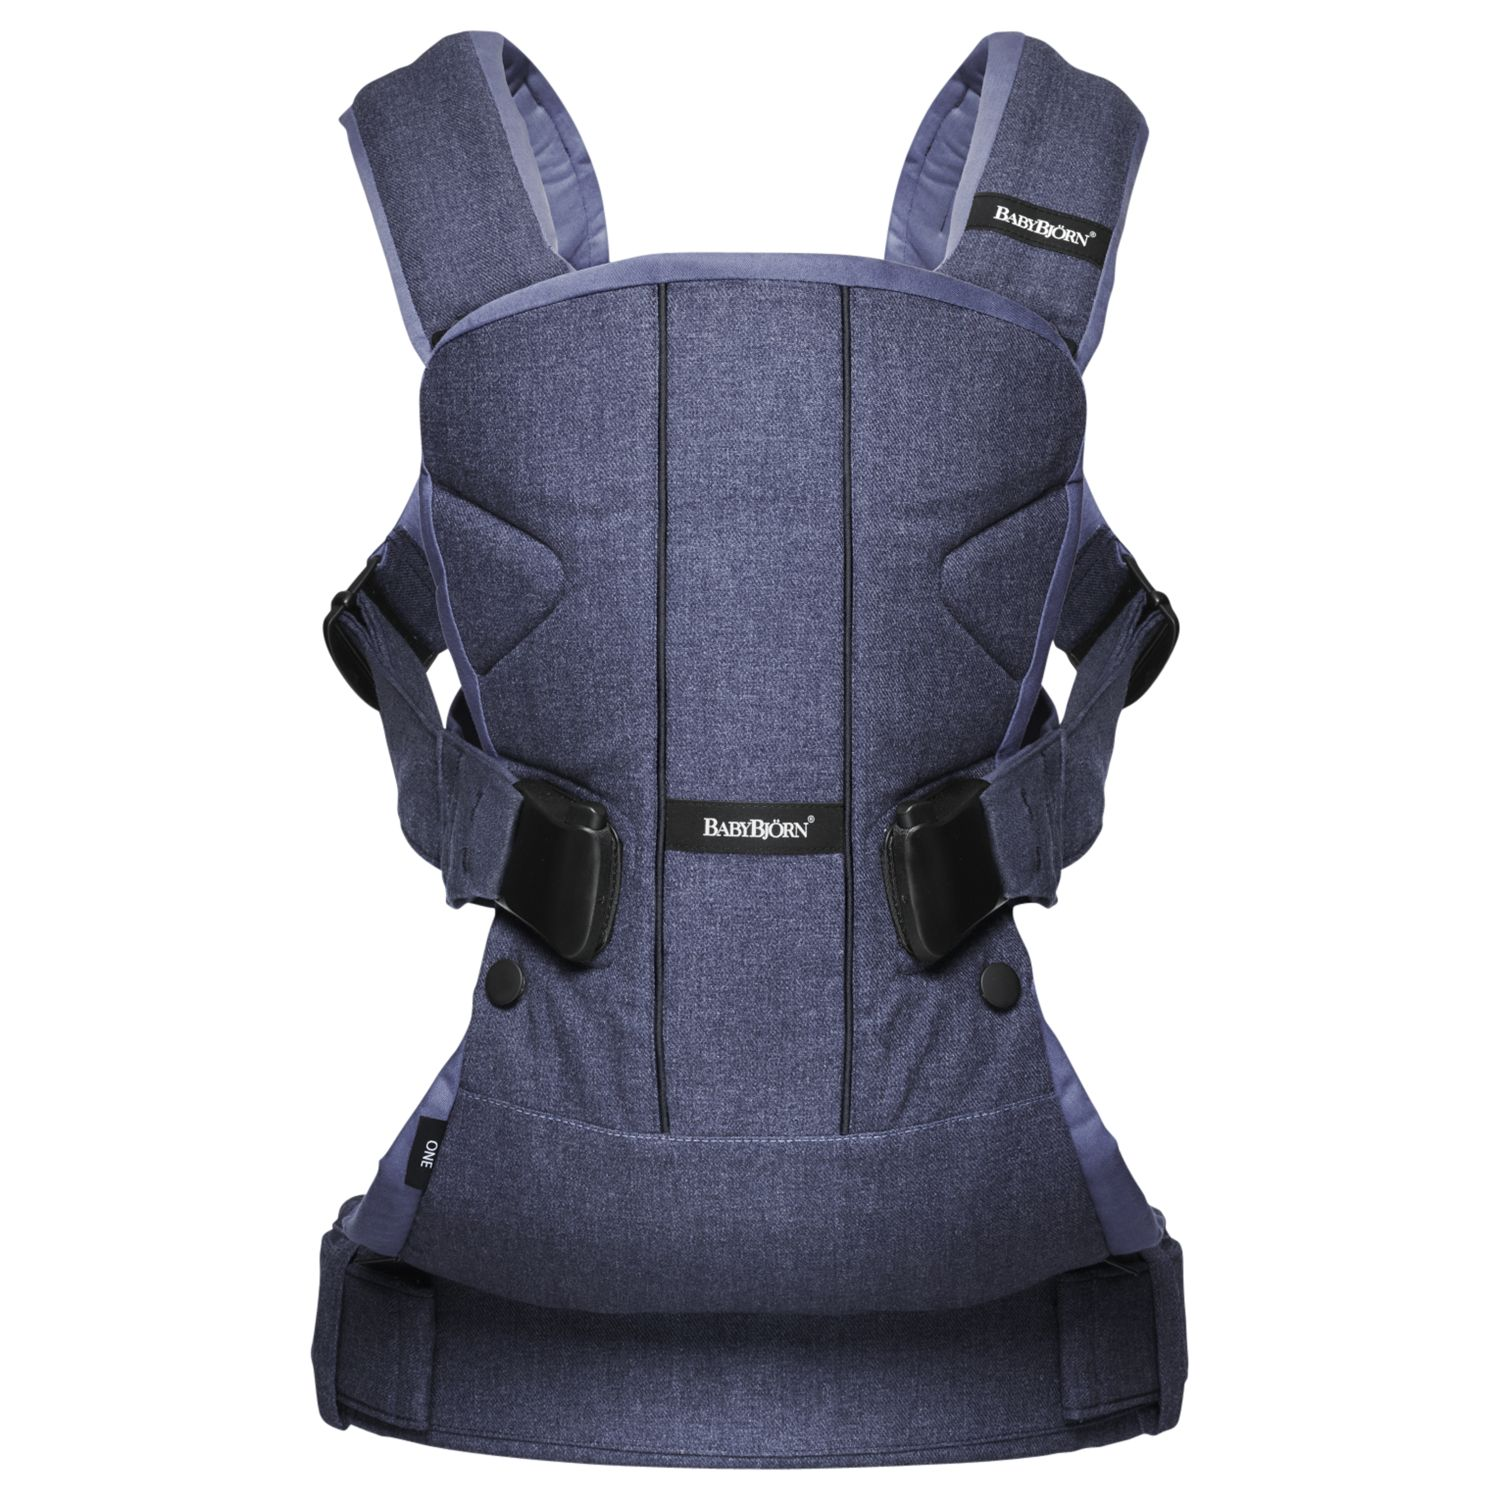 BabyBjorn BabyBjörn One Baby Carrier, Blue